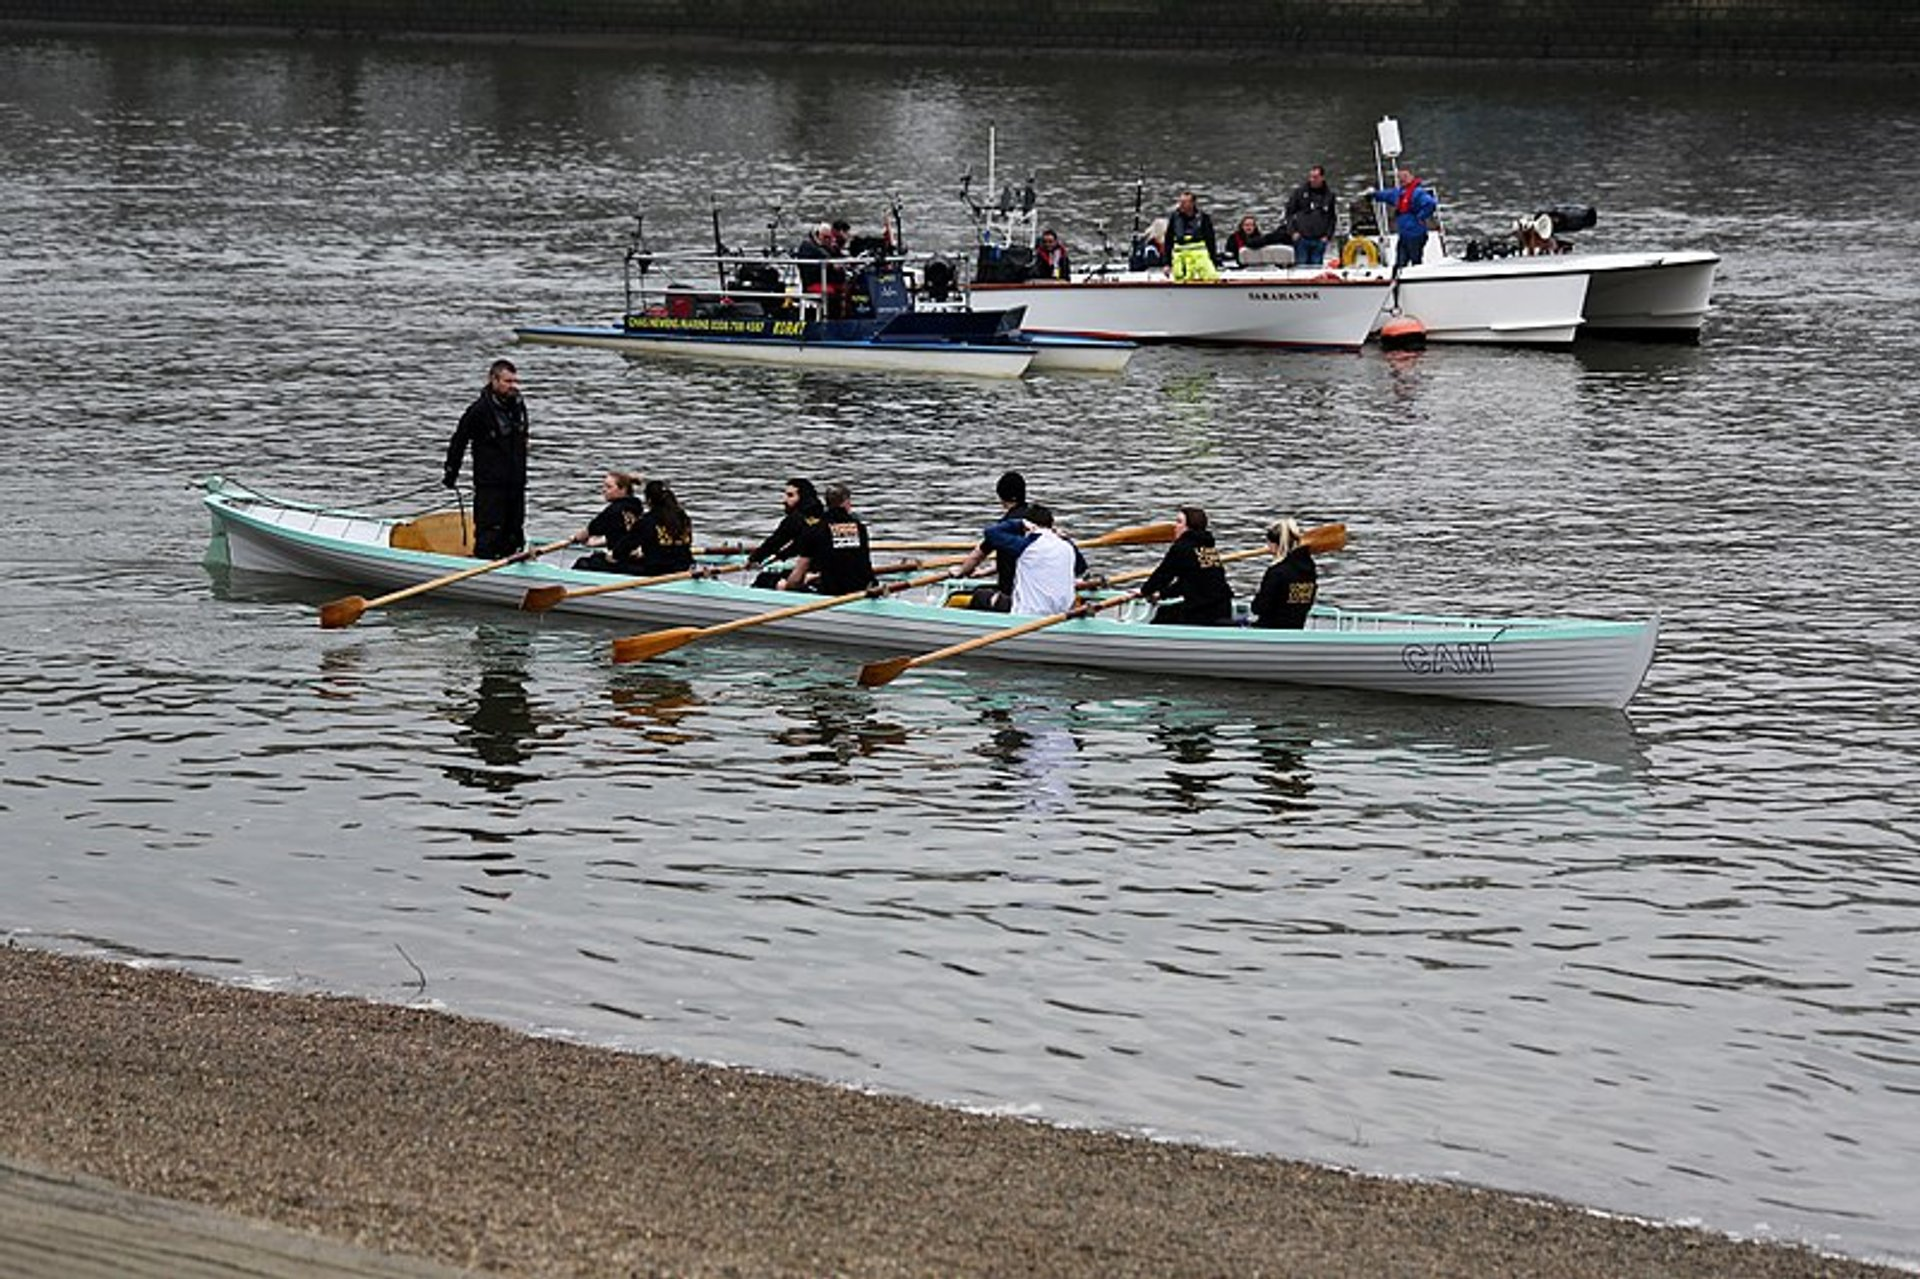 The Boat Race in London - Best Season 2020